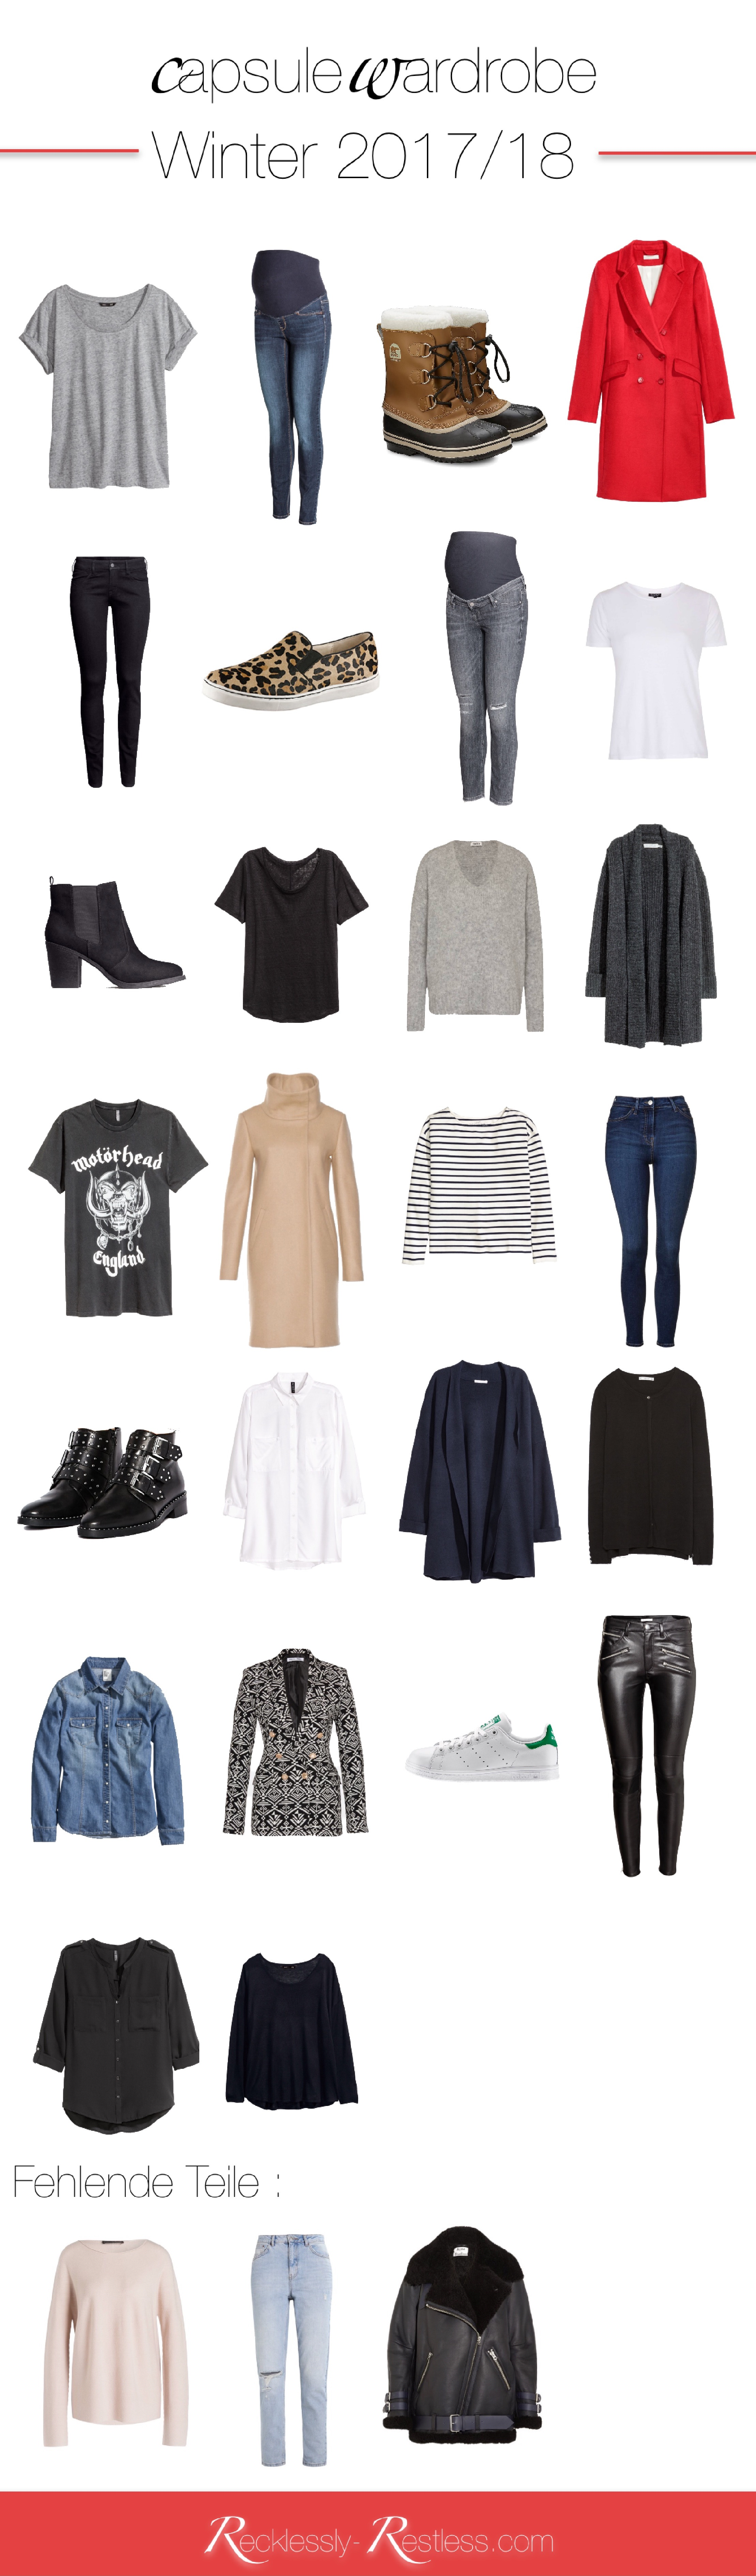 2018 Winter Capsule Wardrobe Beispiel